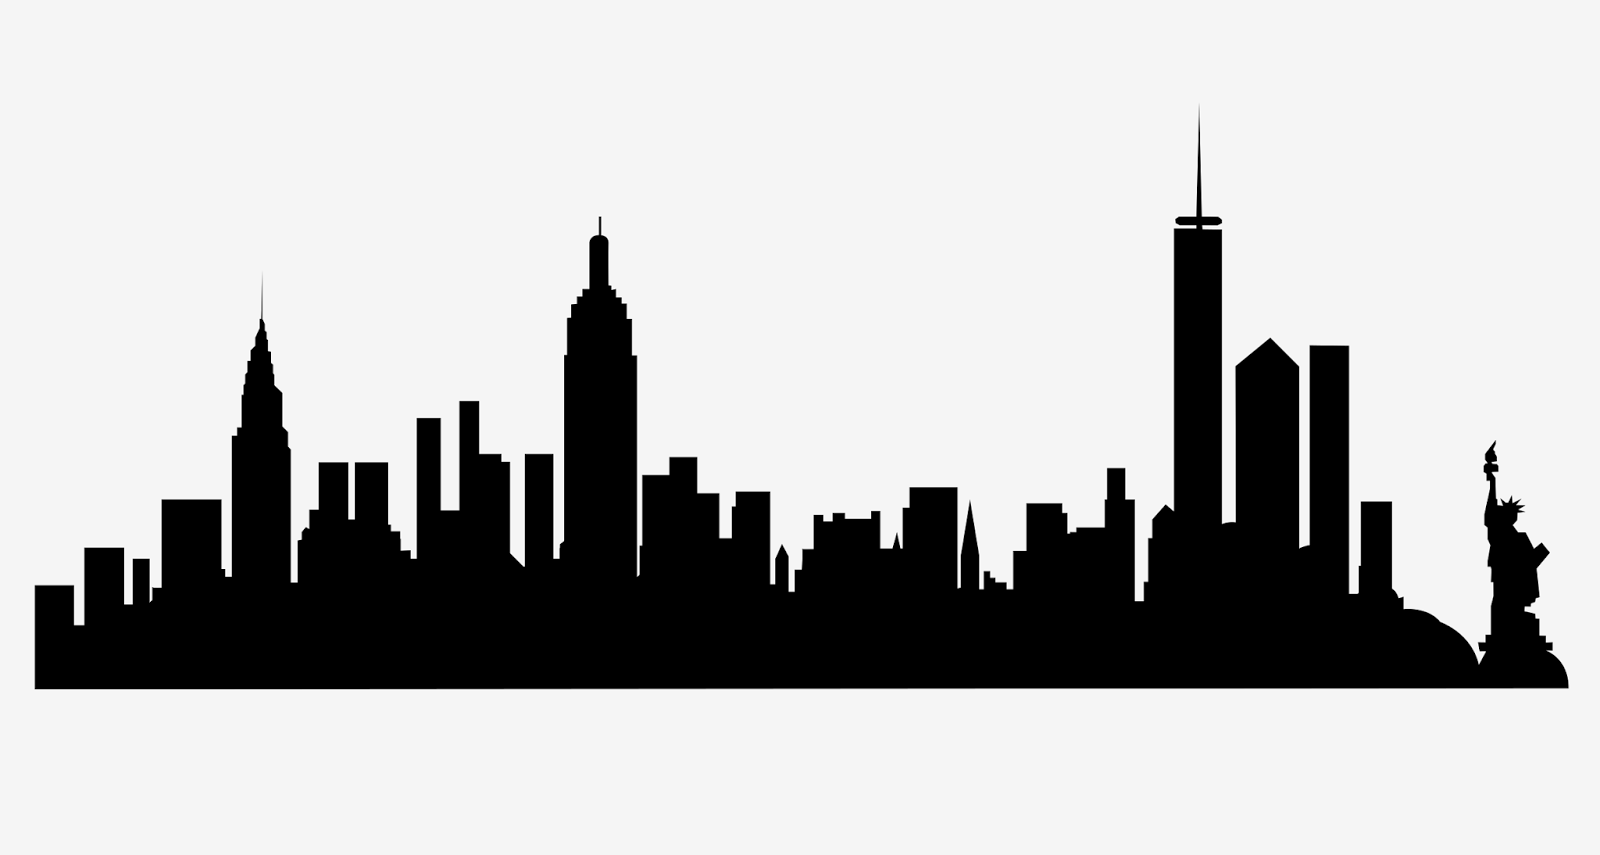 Destroyer silhouette at getdrawings. Battle clipart cityscape